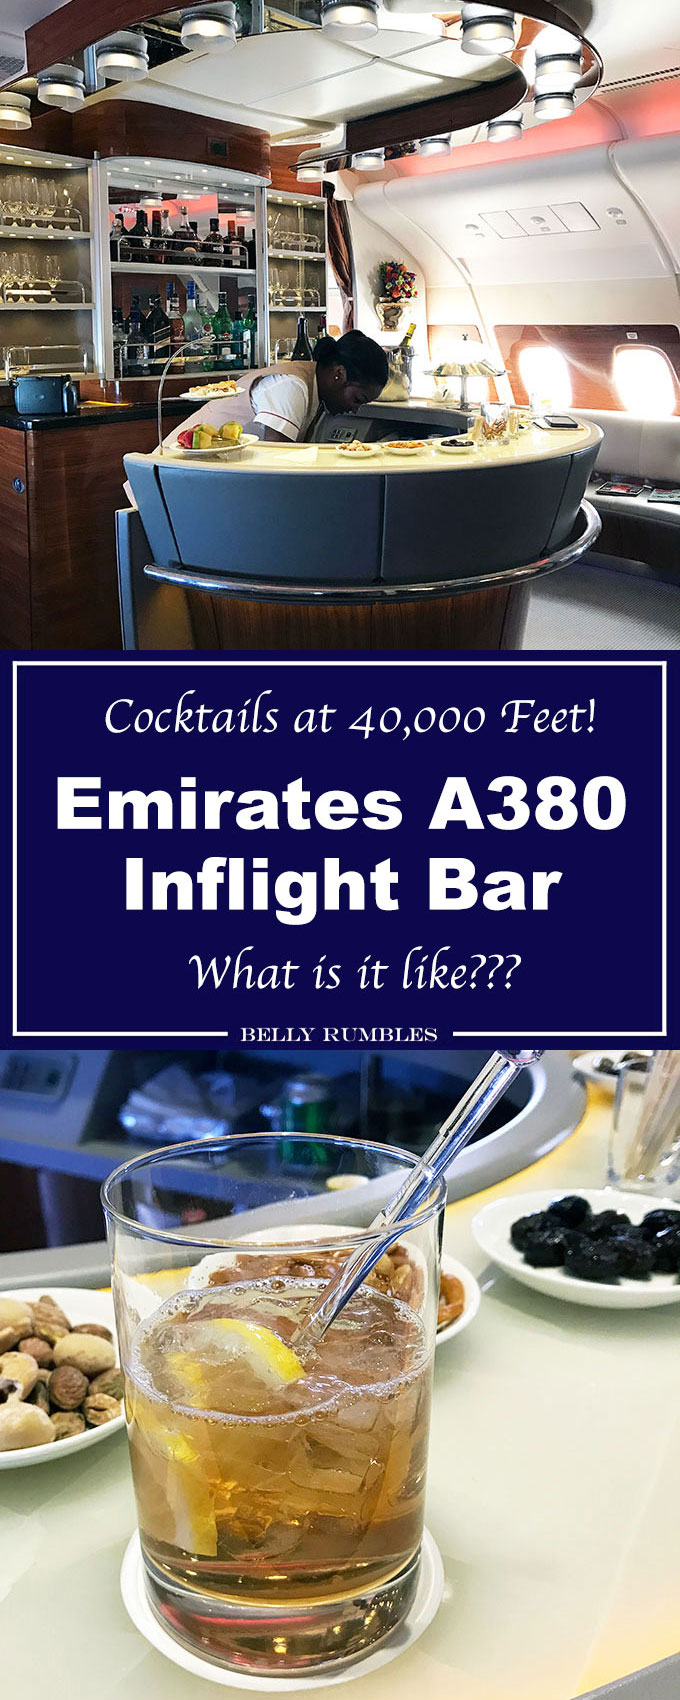 Ever wondered what the Emirates A380 inflight bar was like? Come fly with me and find out how the other half of the plane live.